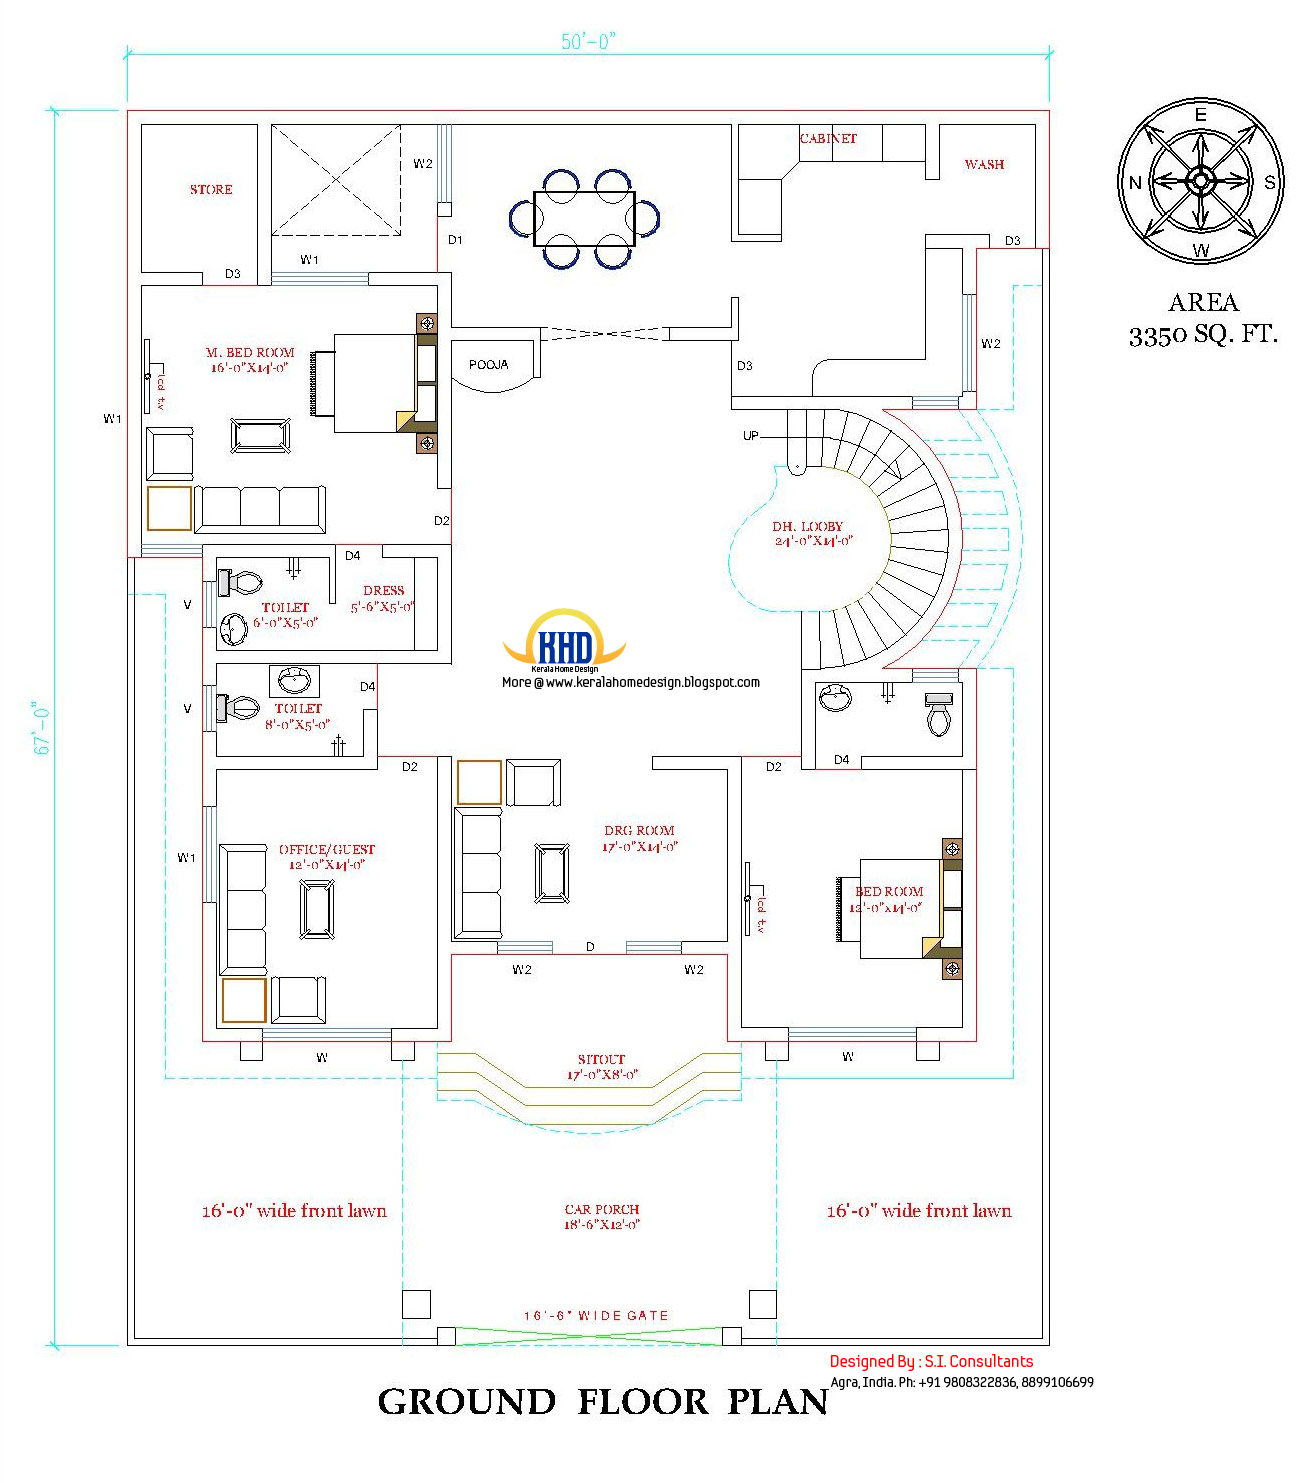 Ground floor plan of beautiful double story house - 3350 Sq. Ft. (311